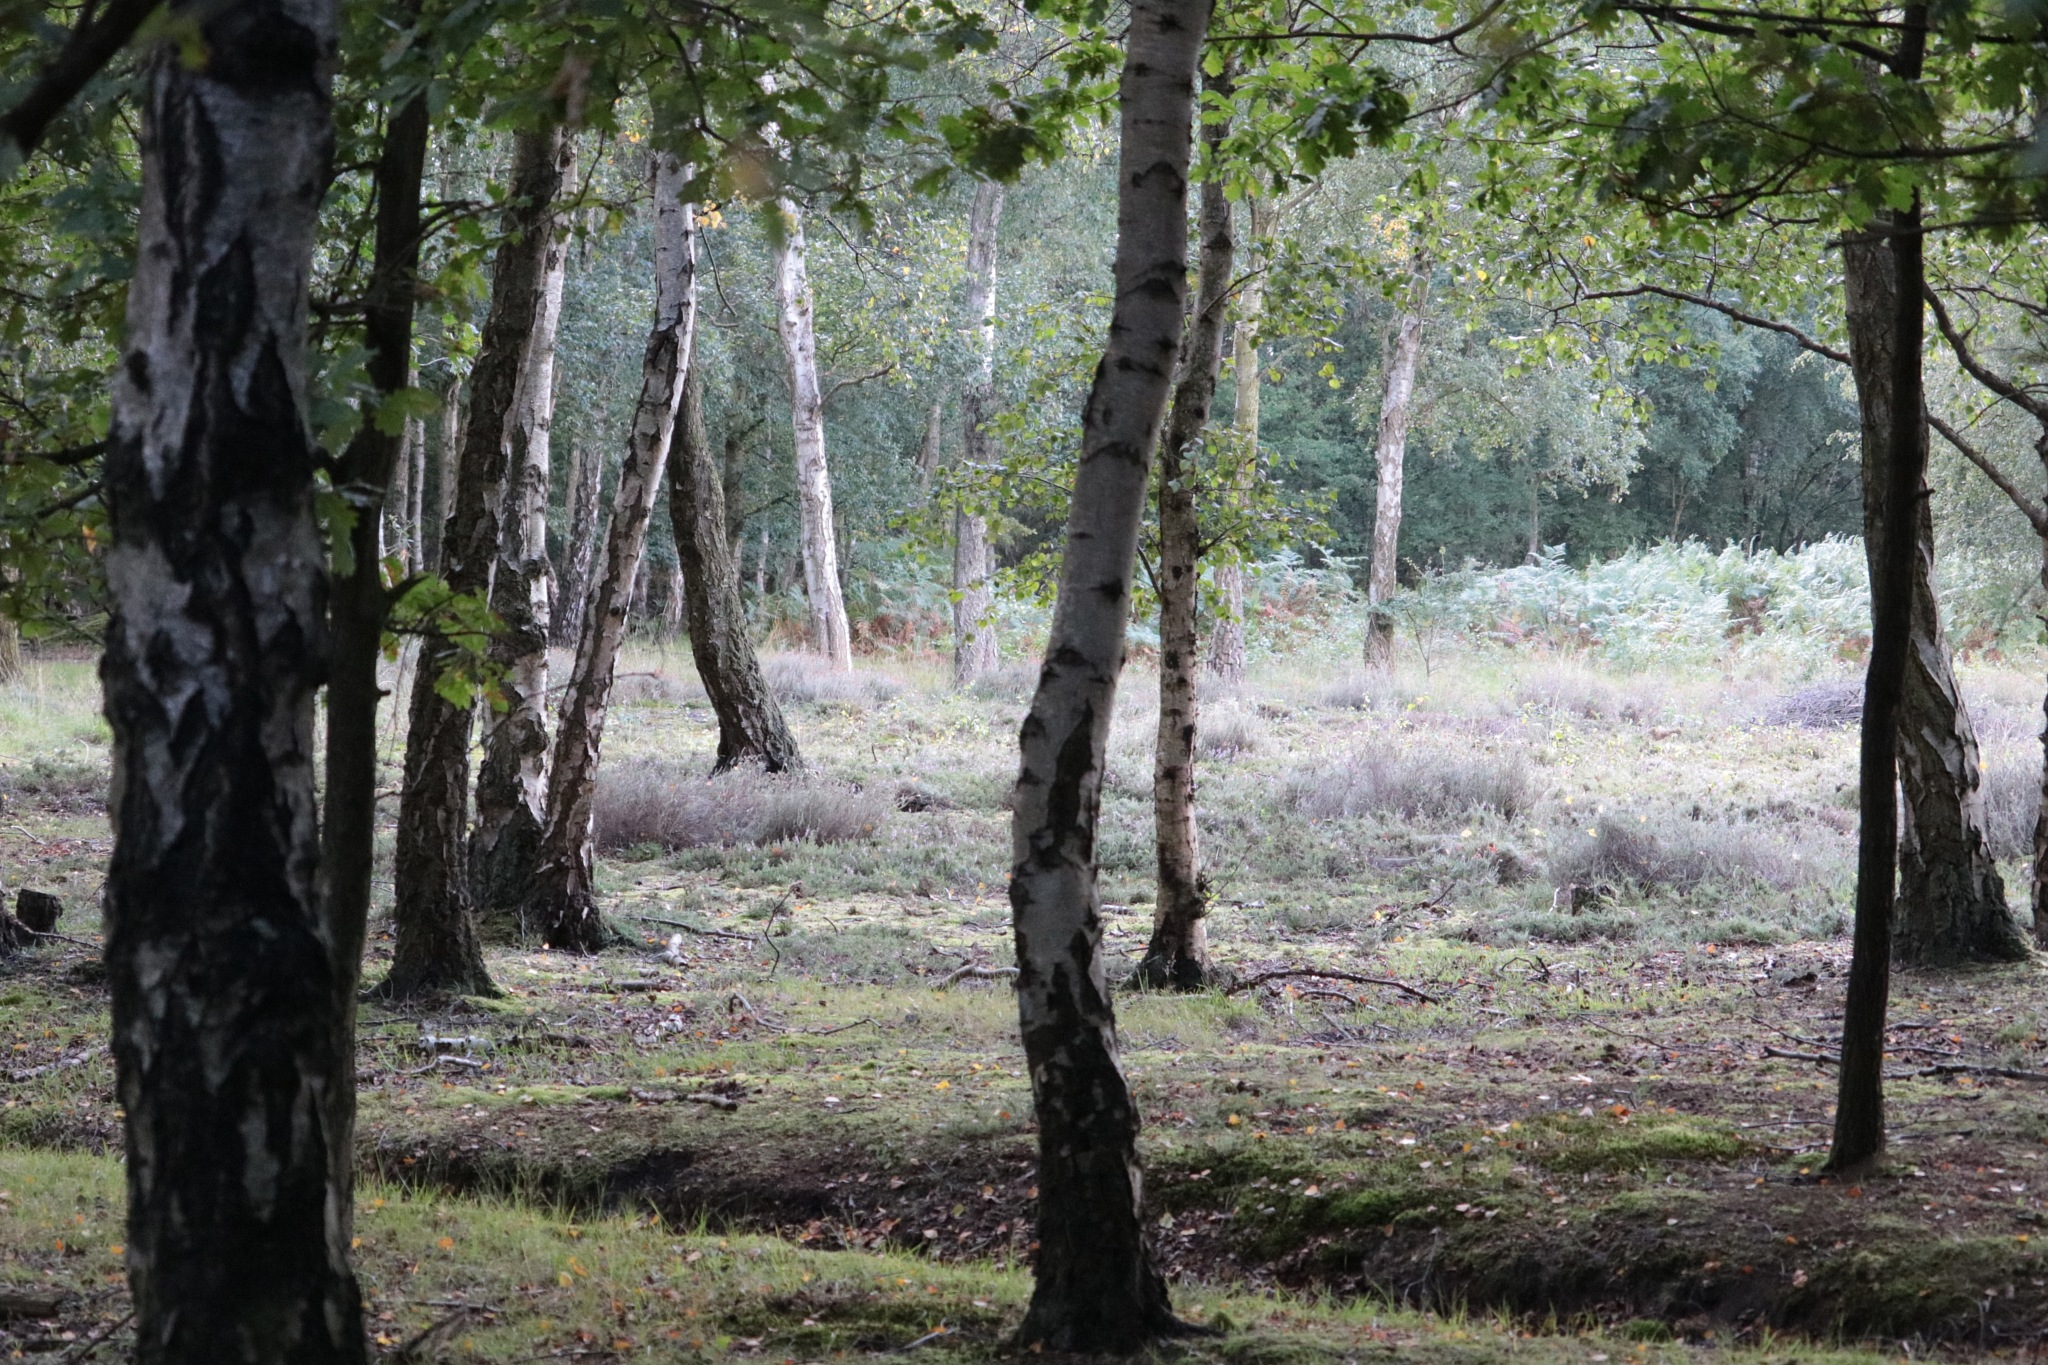 Skipwith Common by Nicki Fothergill